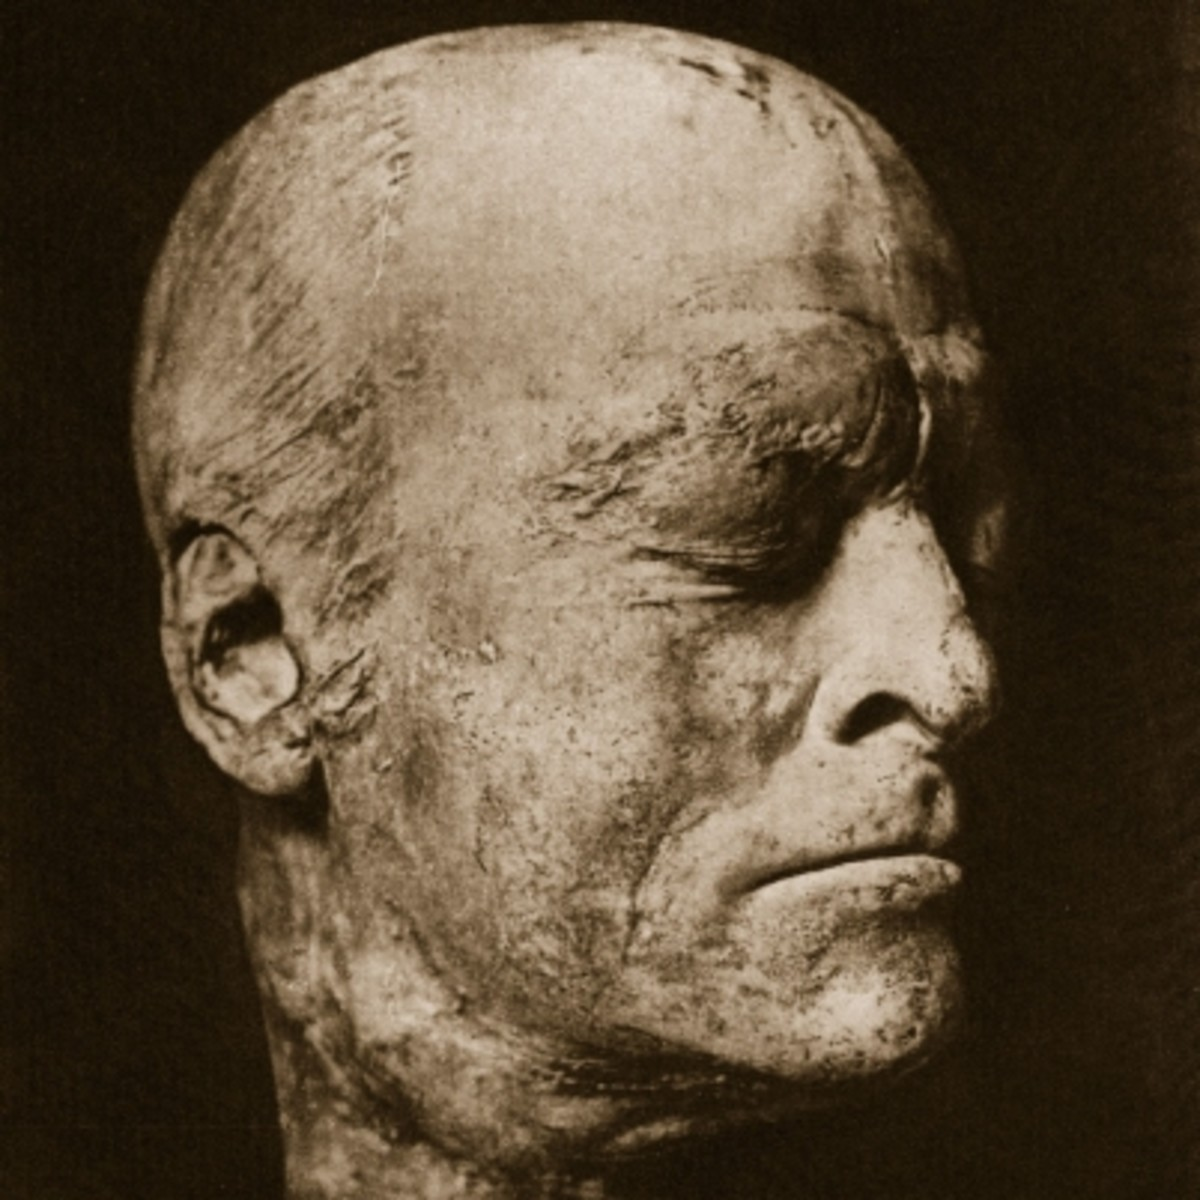 7 Famous Death Masks in History - Biography.com